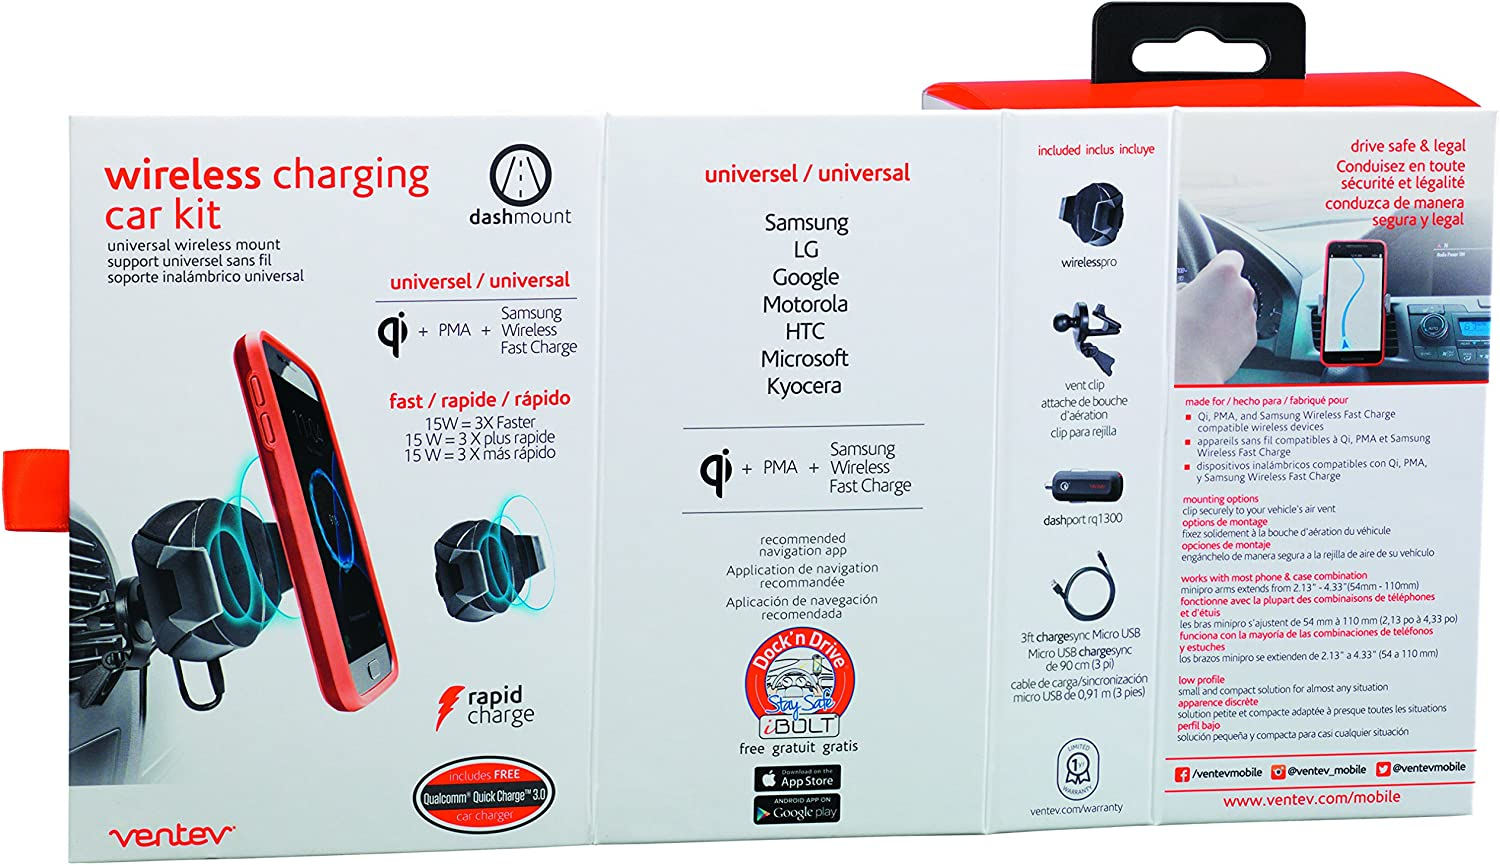 Qualcomm Quick Charge 3.0 Universally Compatible with Mobile Devices Fast Charging Ventev Wall Charger Wallport RQ1300 Mfi Certified No-Fray Durability Designed for Cases